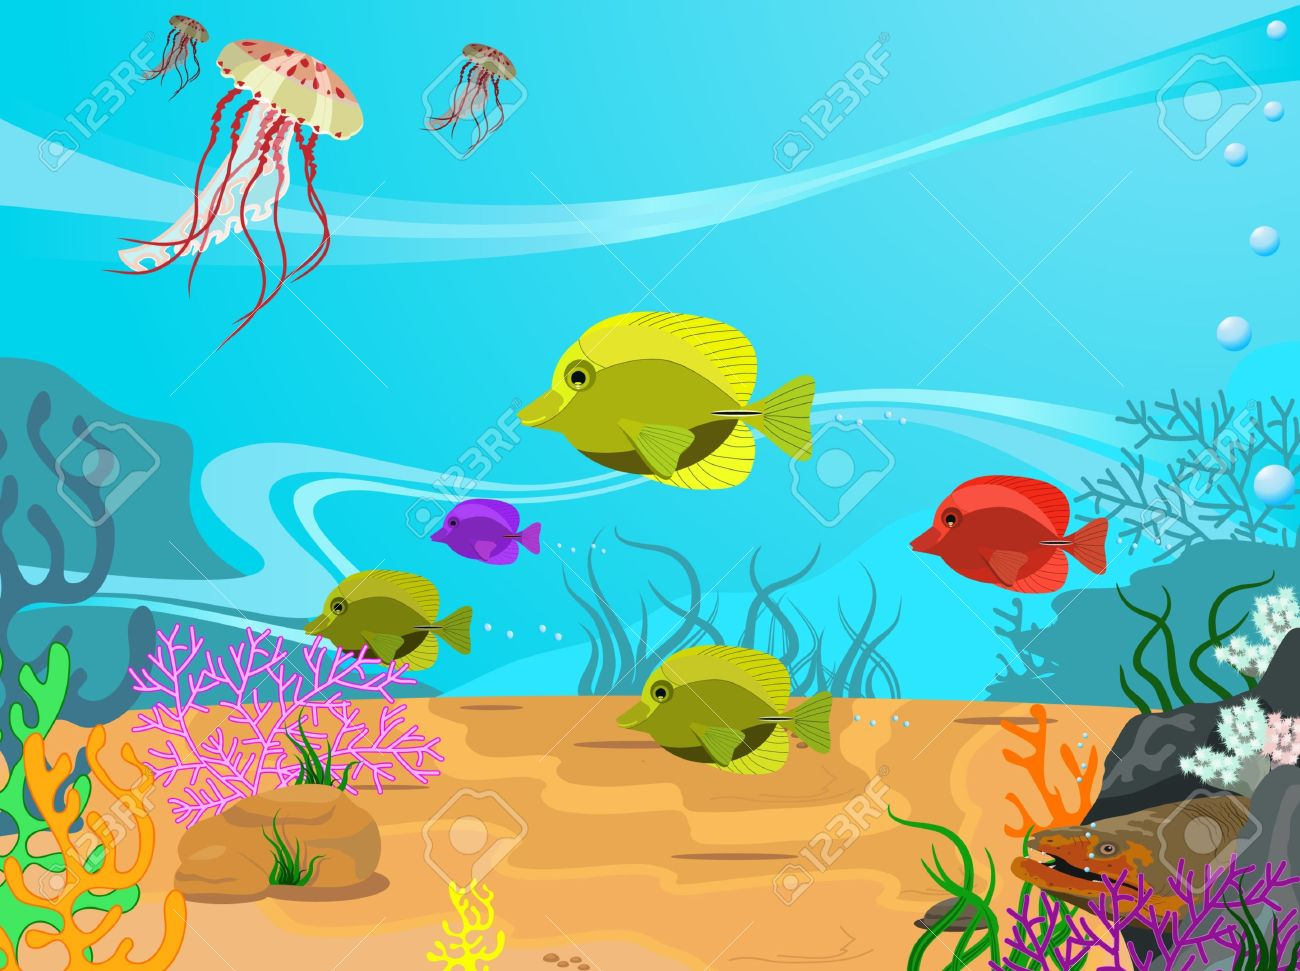 Illustration Of The Seabed And Its Inhabitants Royalty Free.